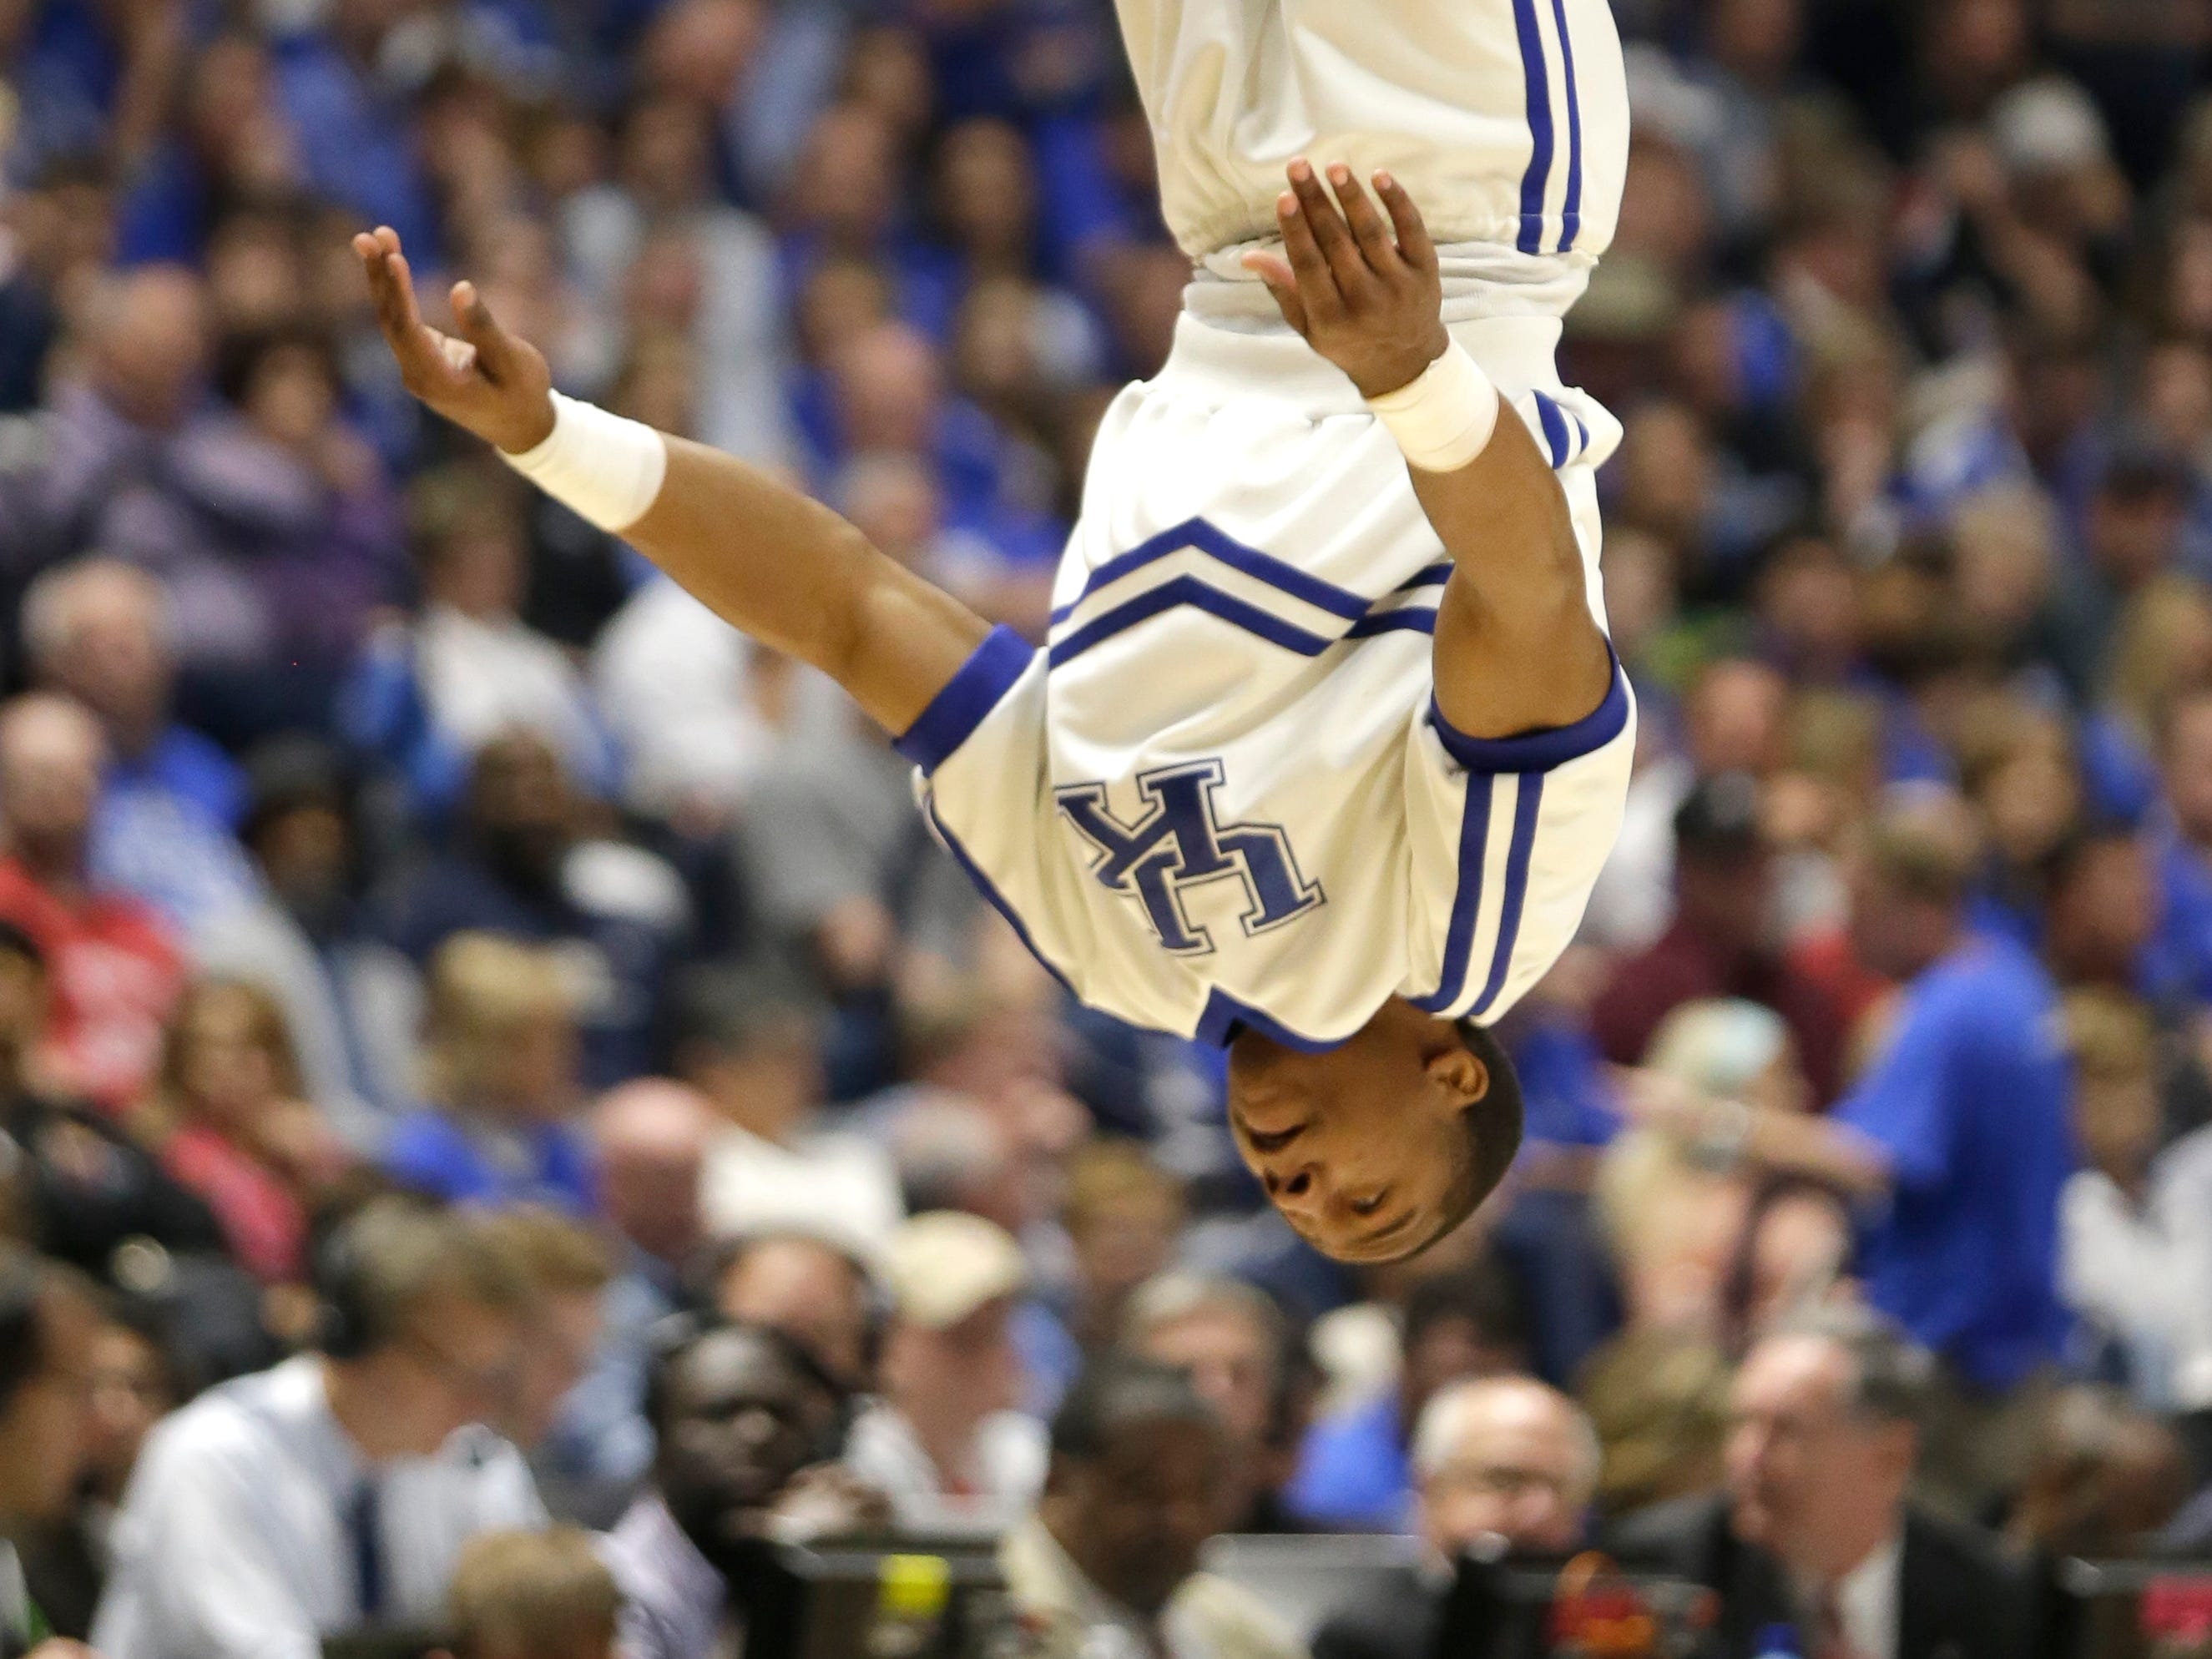 A Kentucky cheerleader performs during the first half of an NCAA college basketball game against Georgia in the Southeastern Conference tournament in Nashville, Tenn., Saturday, March 12, 2016. (AP Photo/Mark Humphrey)